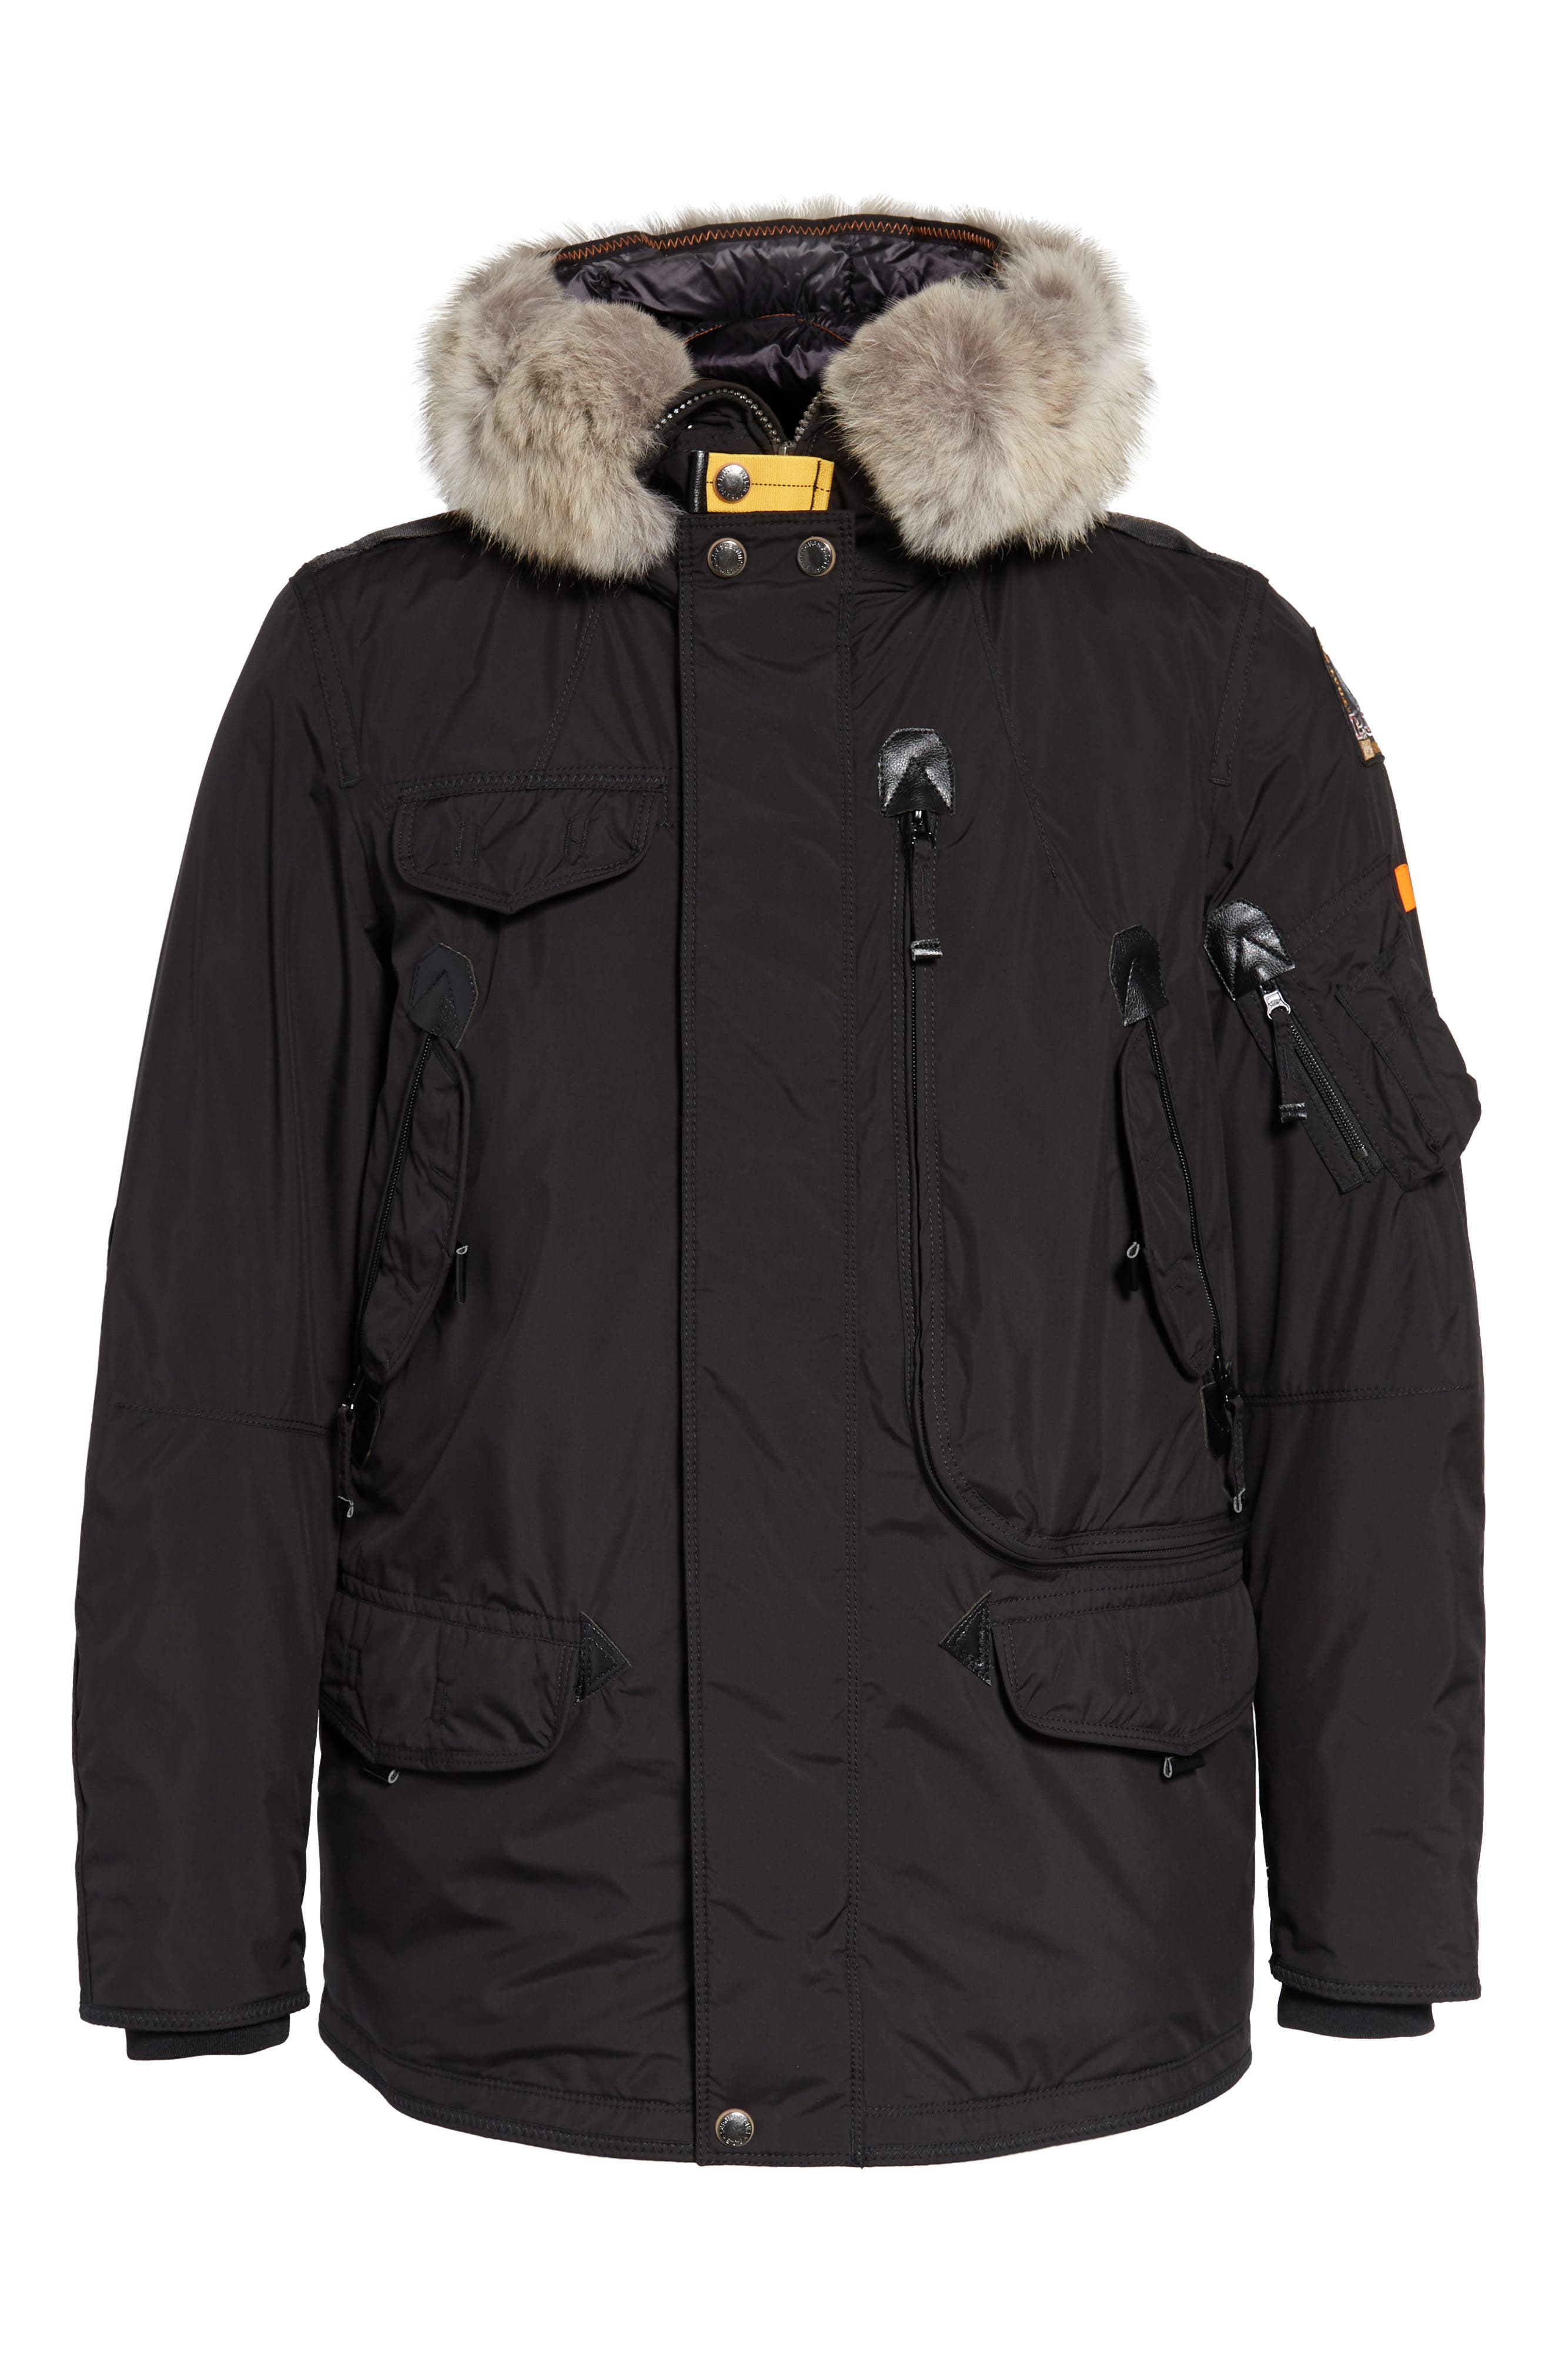 Right Hand Light 700 Fill Power Down Jacket with Genuine Coyote Fur Trim,                             Alternate thumbnail 5, color,                             BLACK